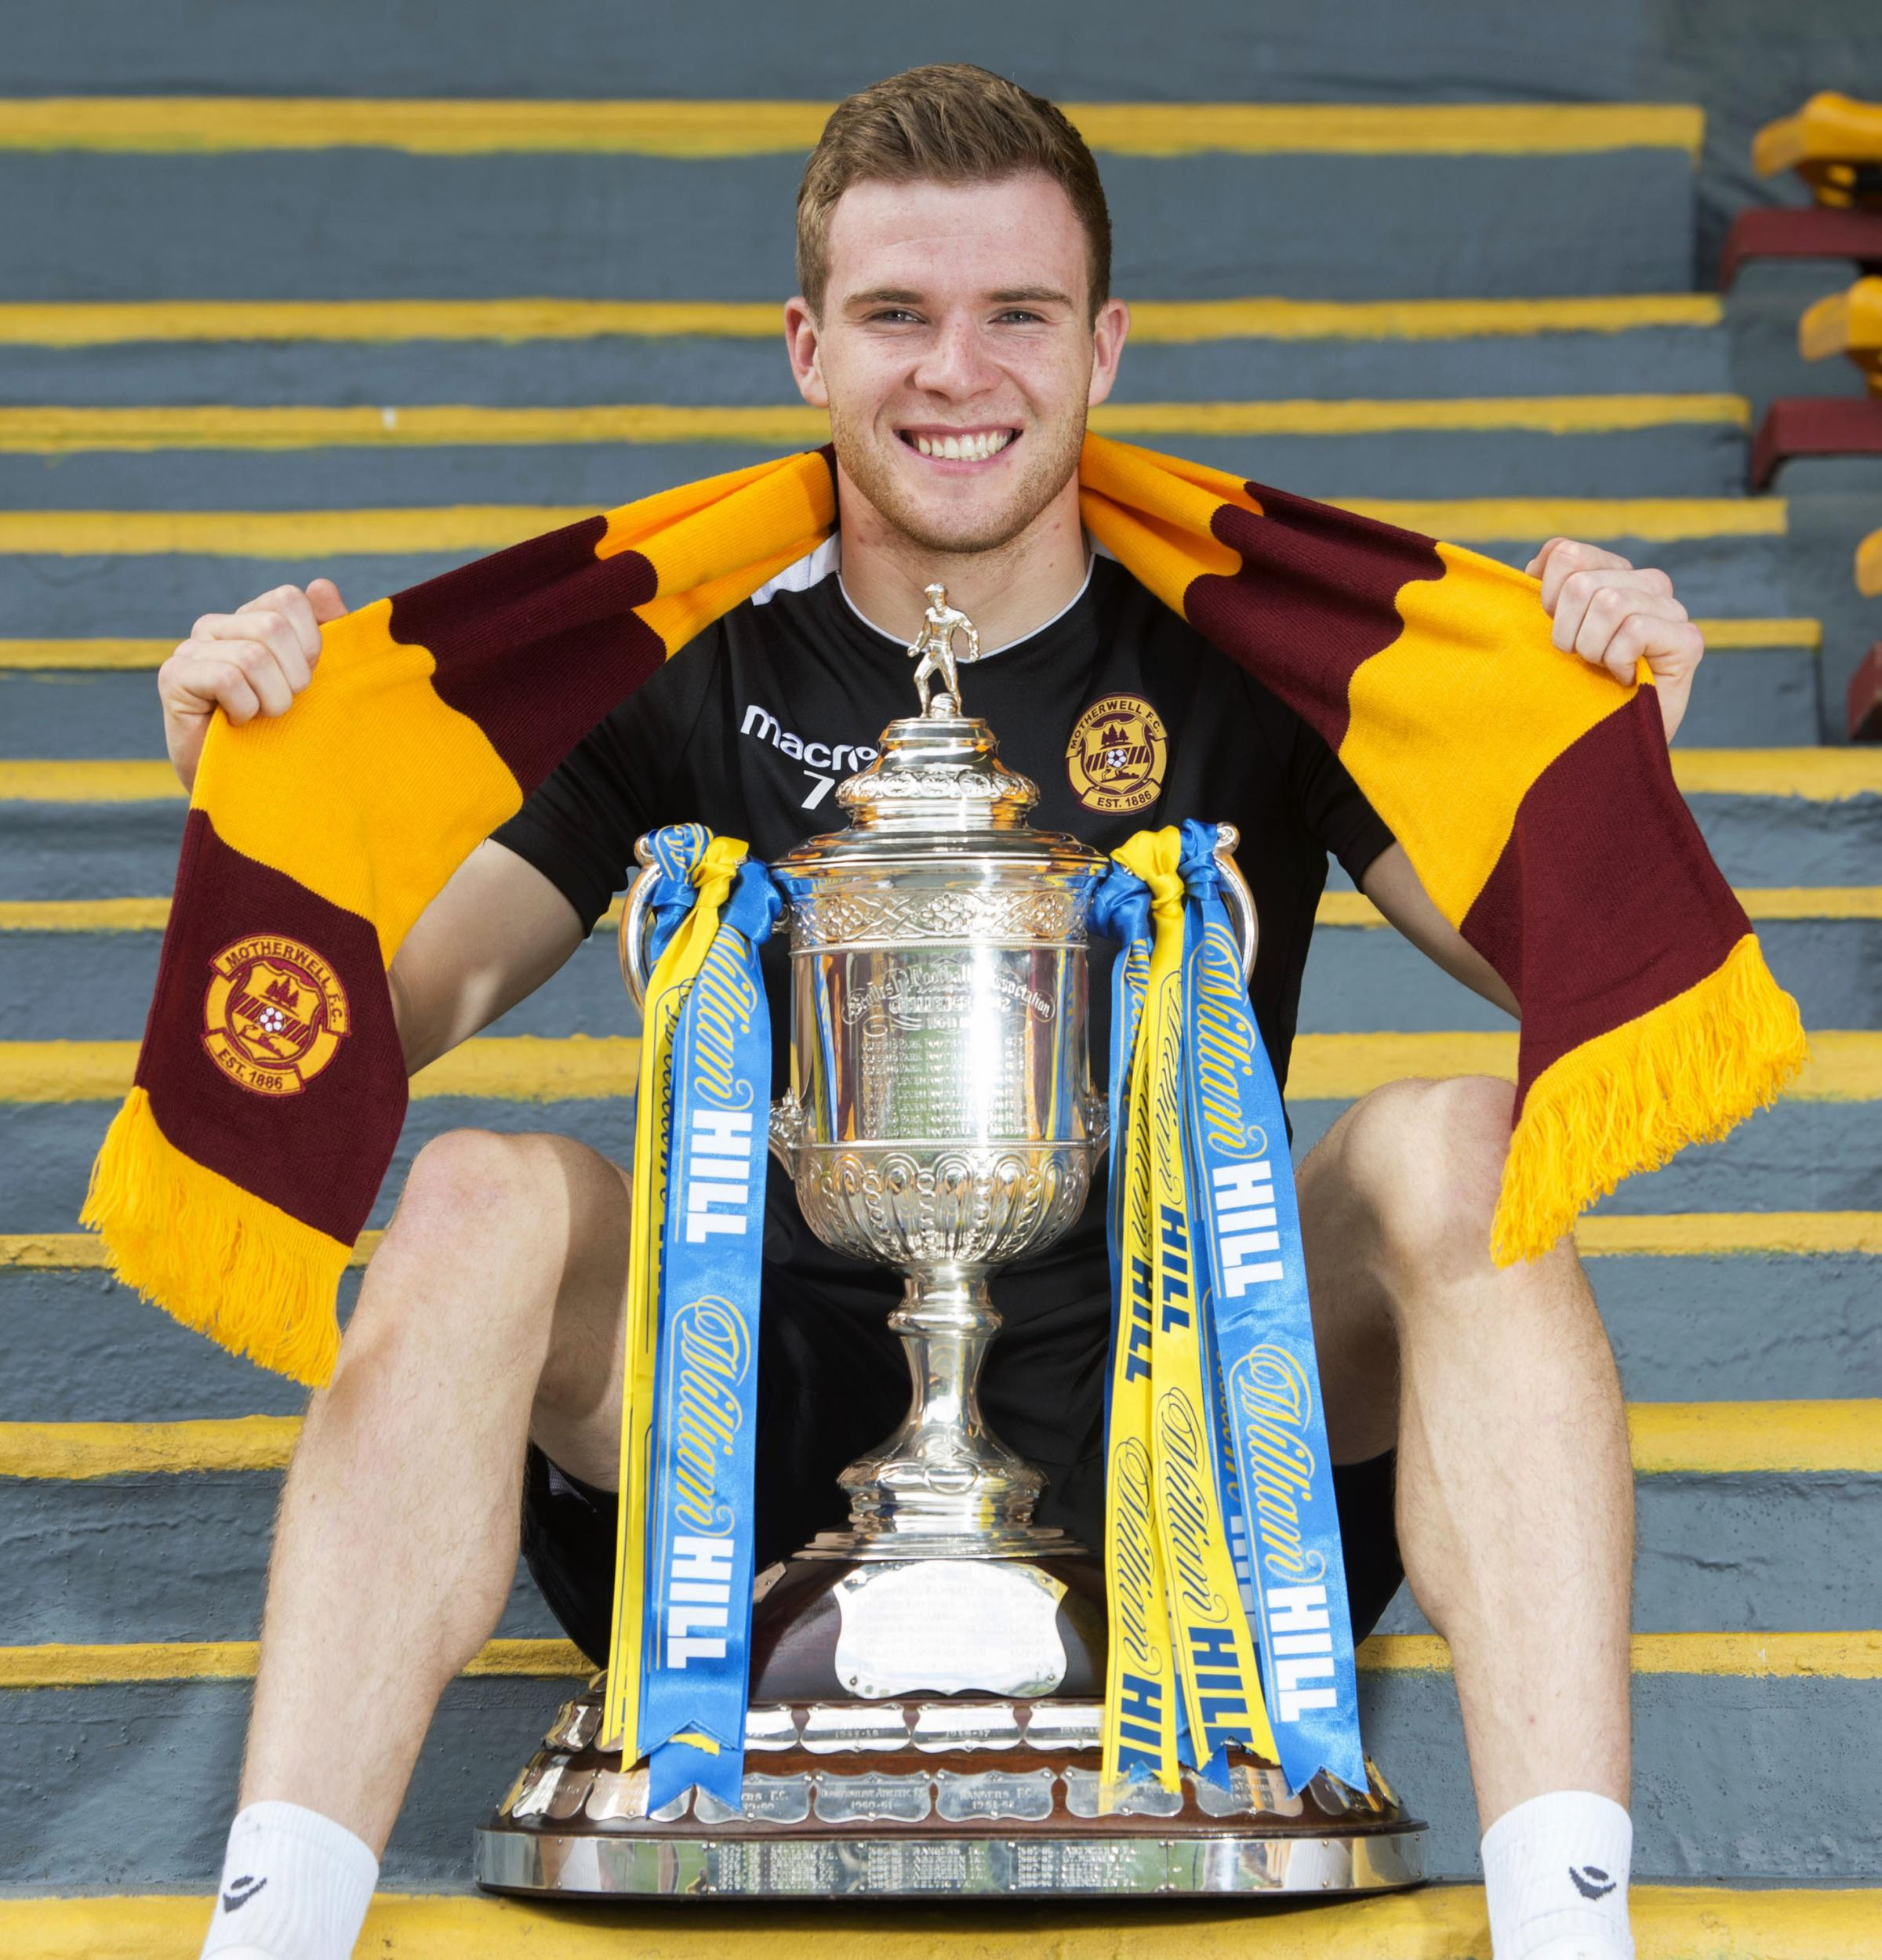 15/05/18. FIR PARK - MOTHERWELL. Motherwell's Chris Cadden previews the William Hill Scottish Cup Final against Celtic..